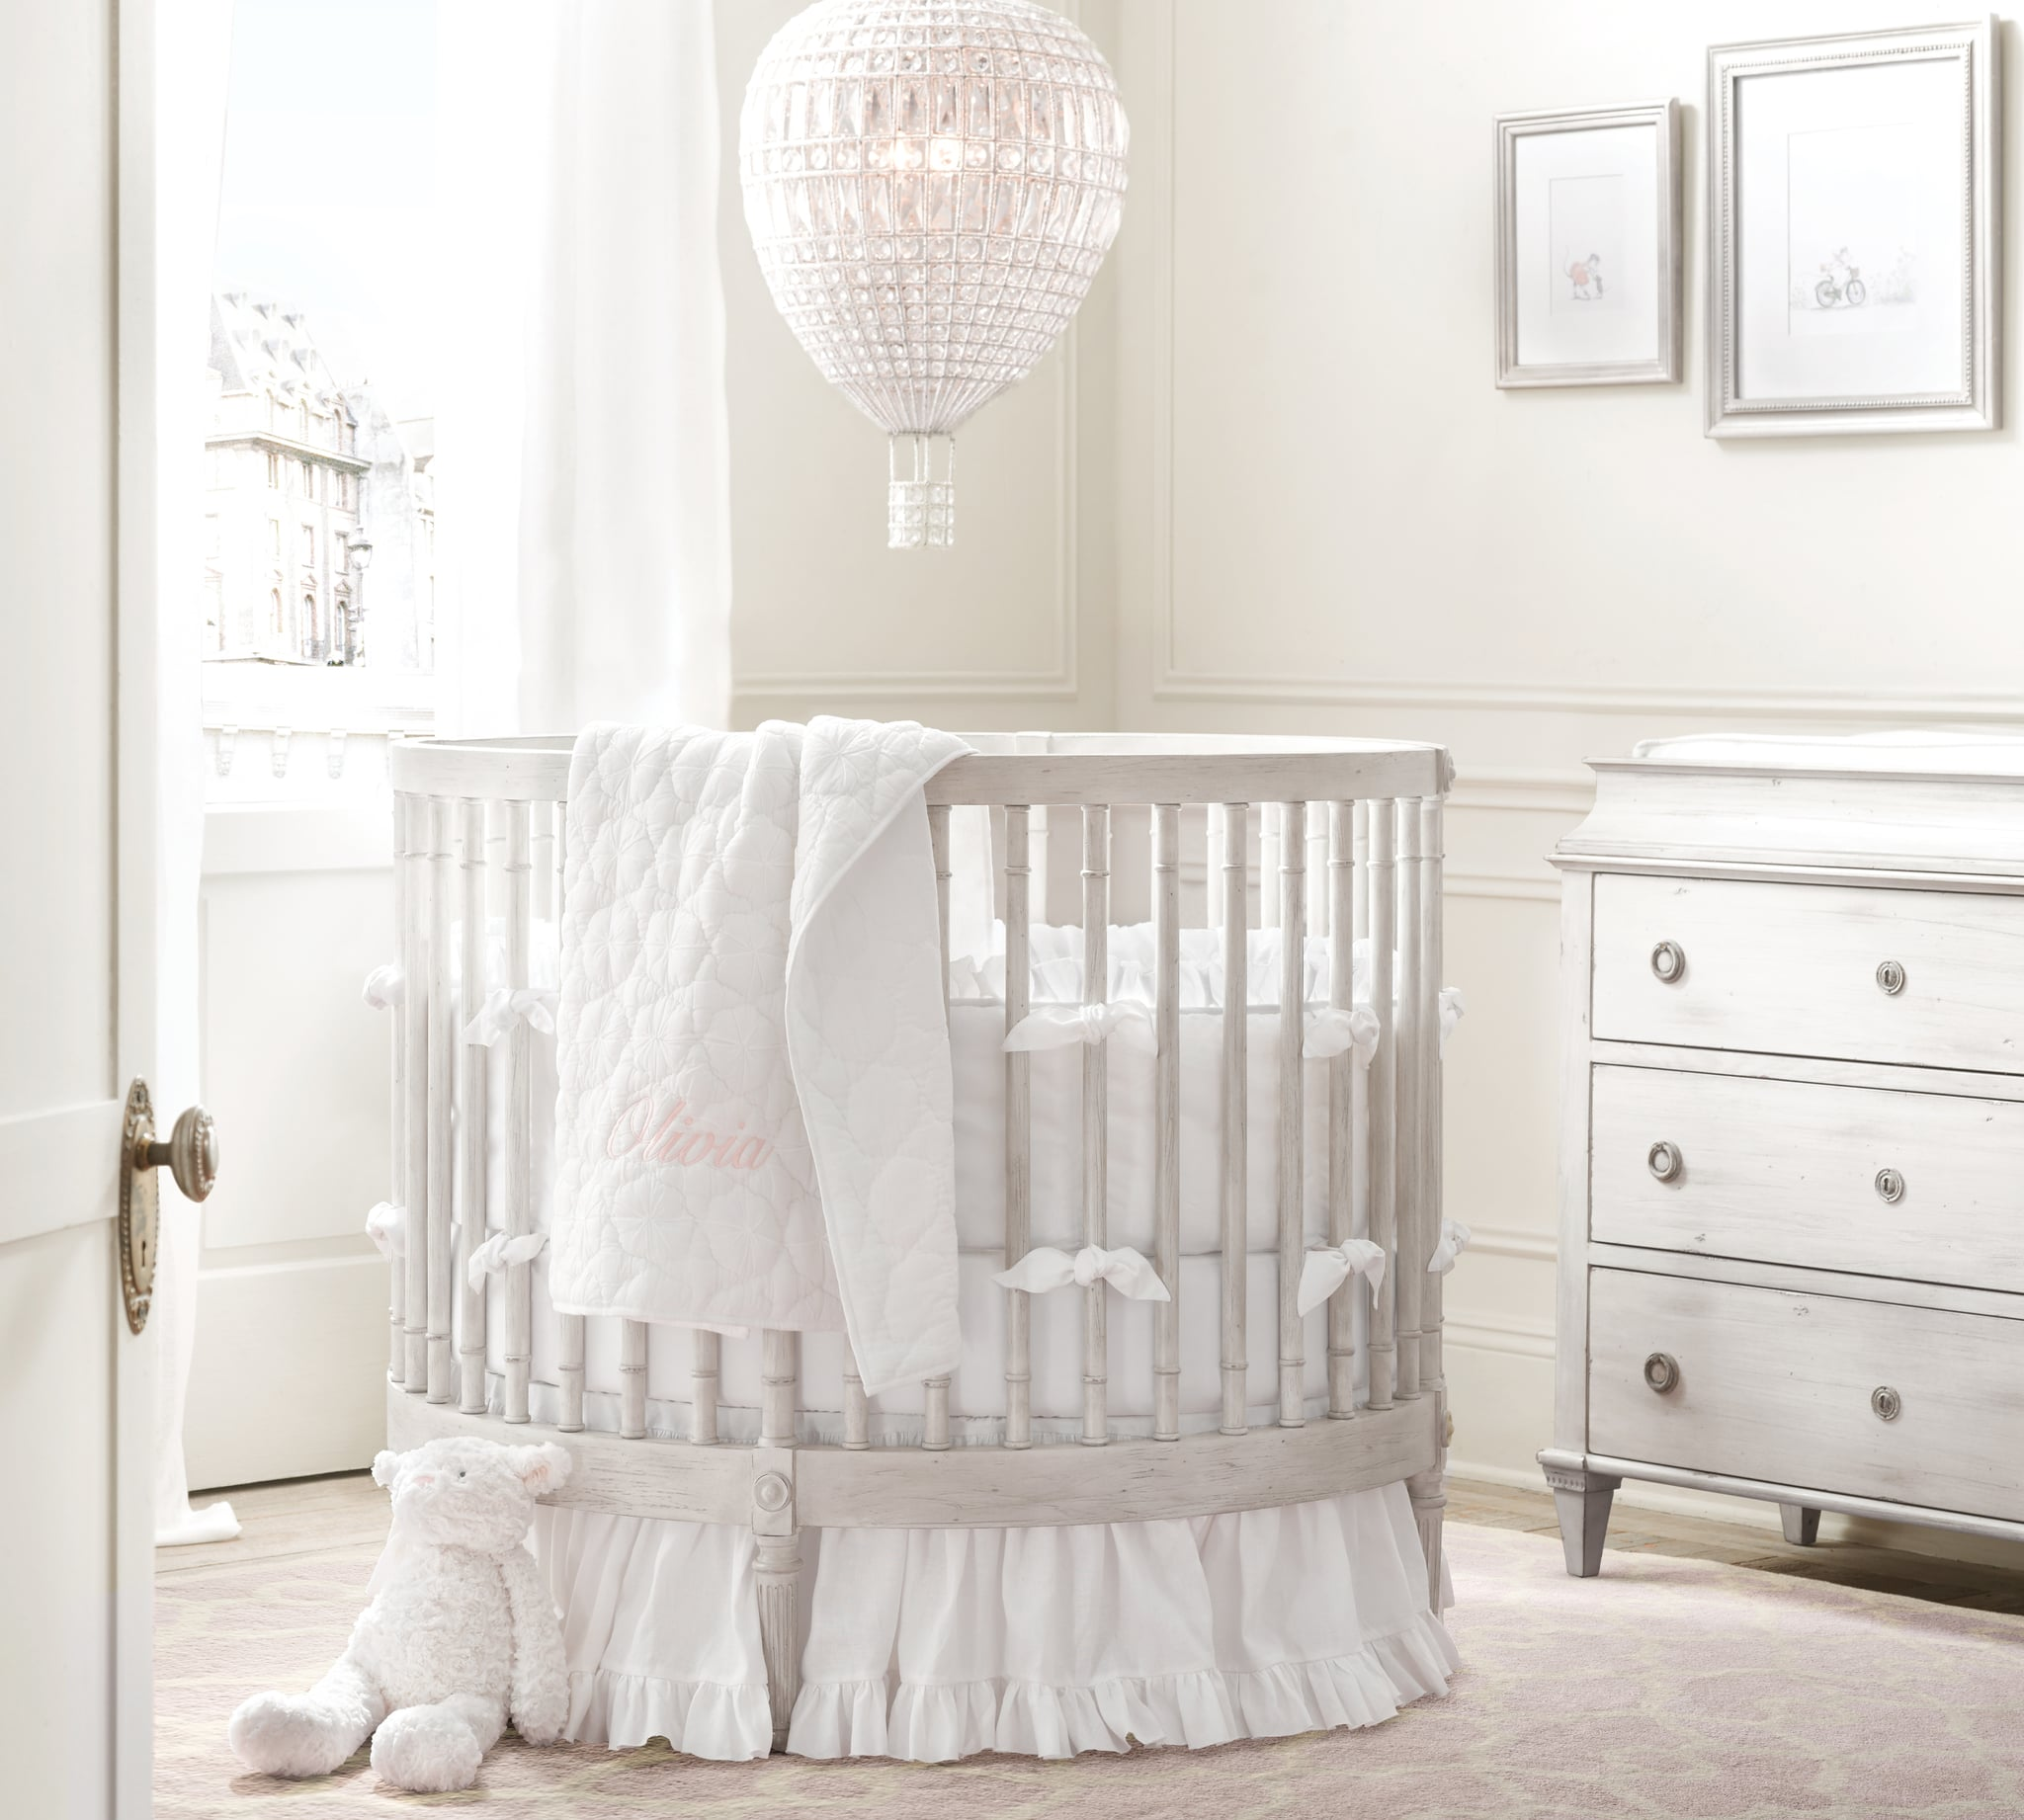 Up, Up, and Away in This Whitewashed Nursery